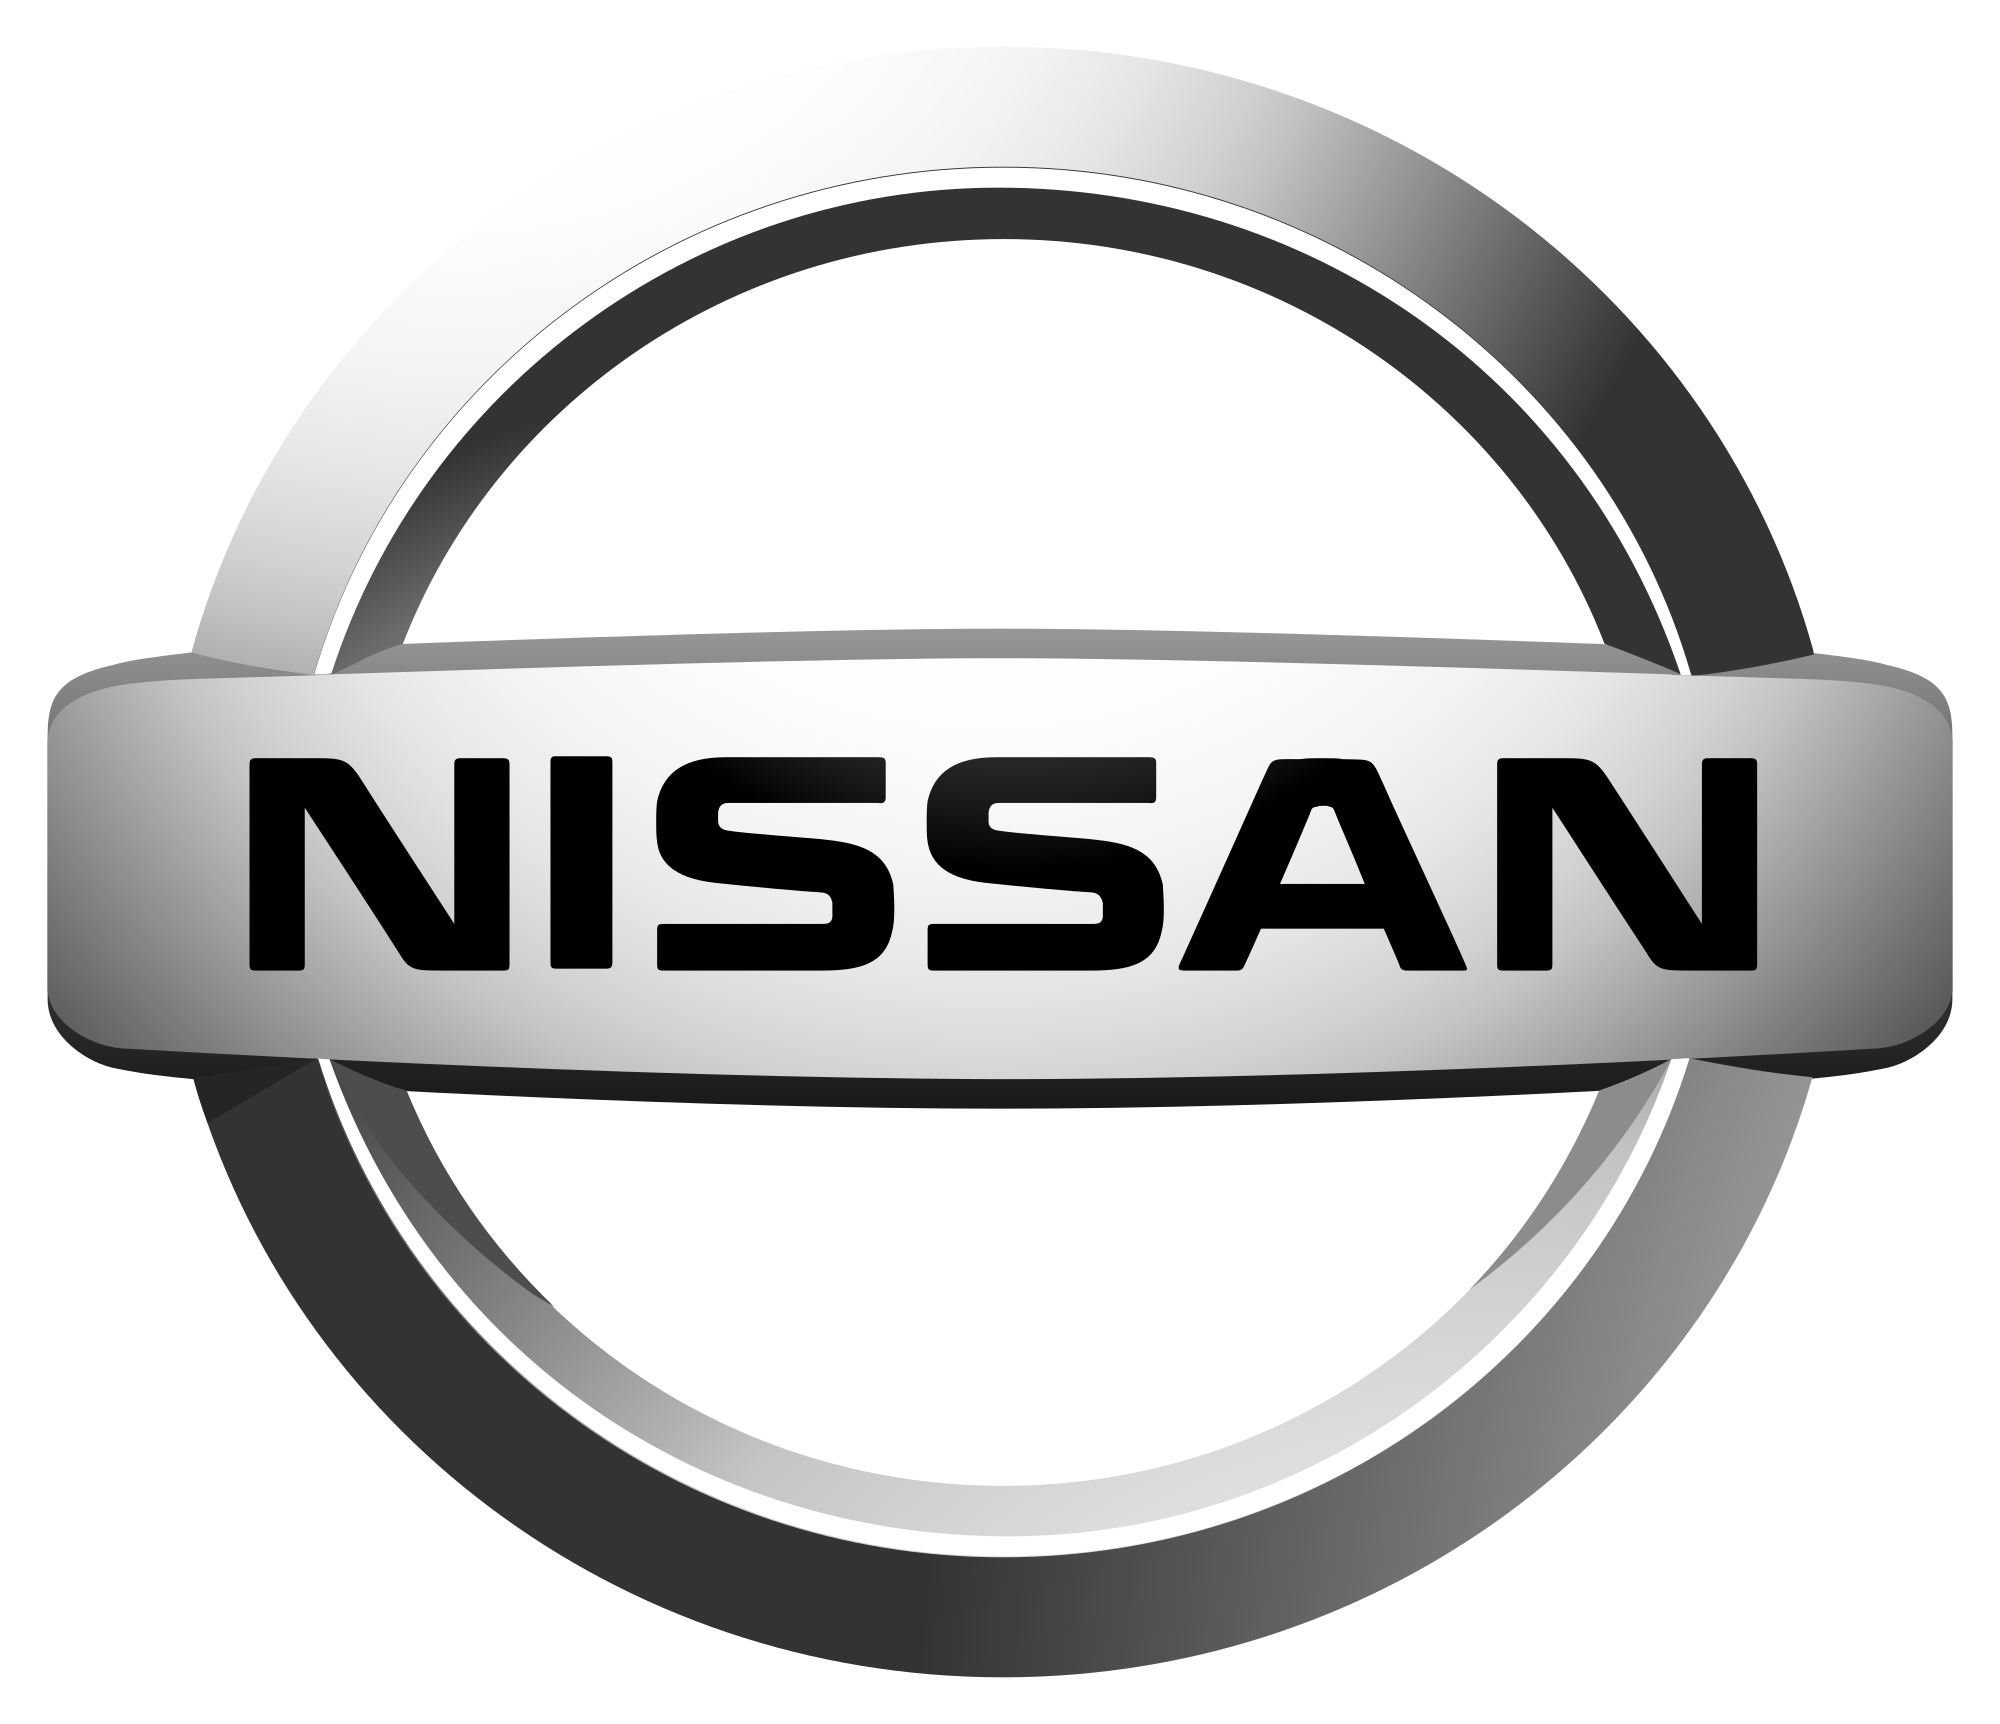 Nissan pulls out of Trump emissions fight with California